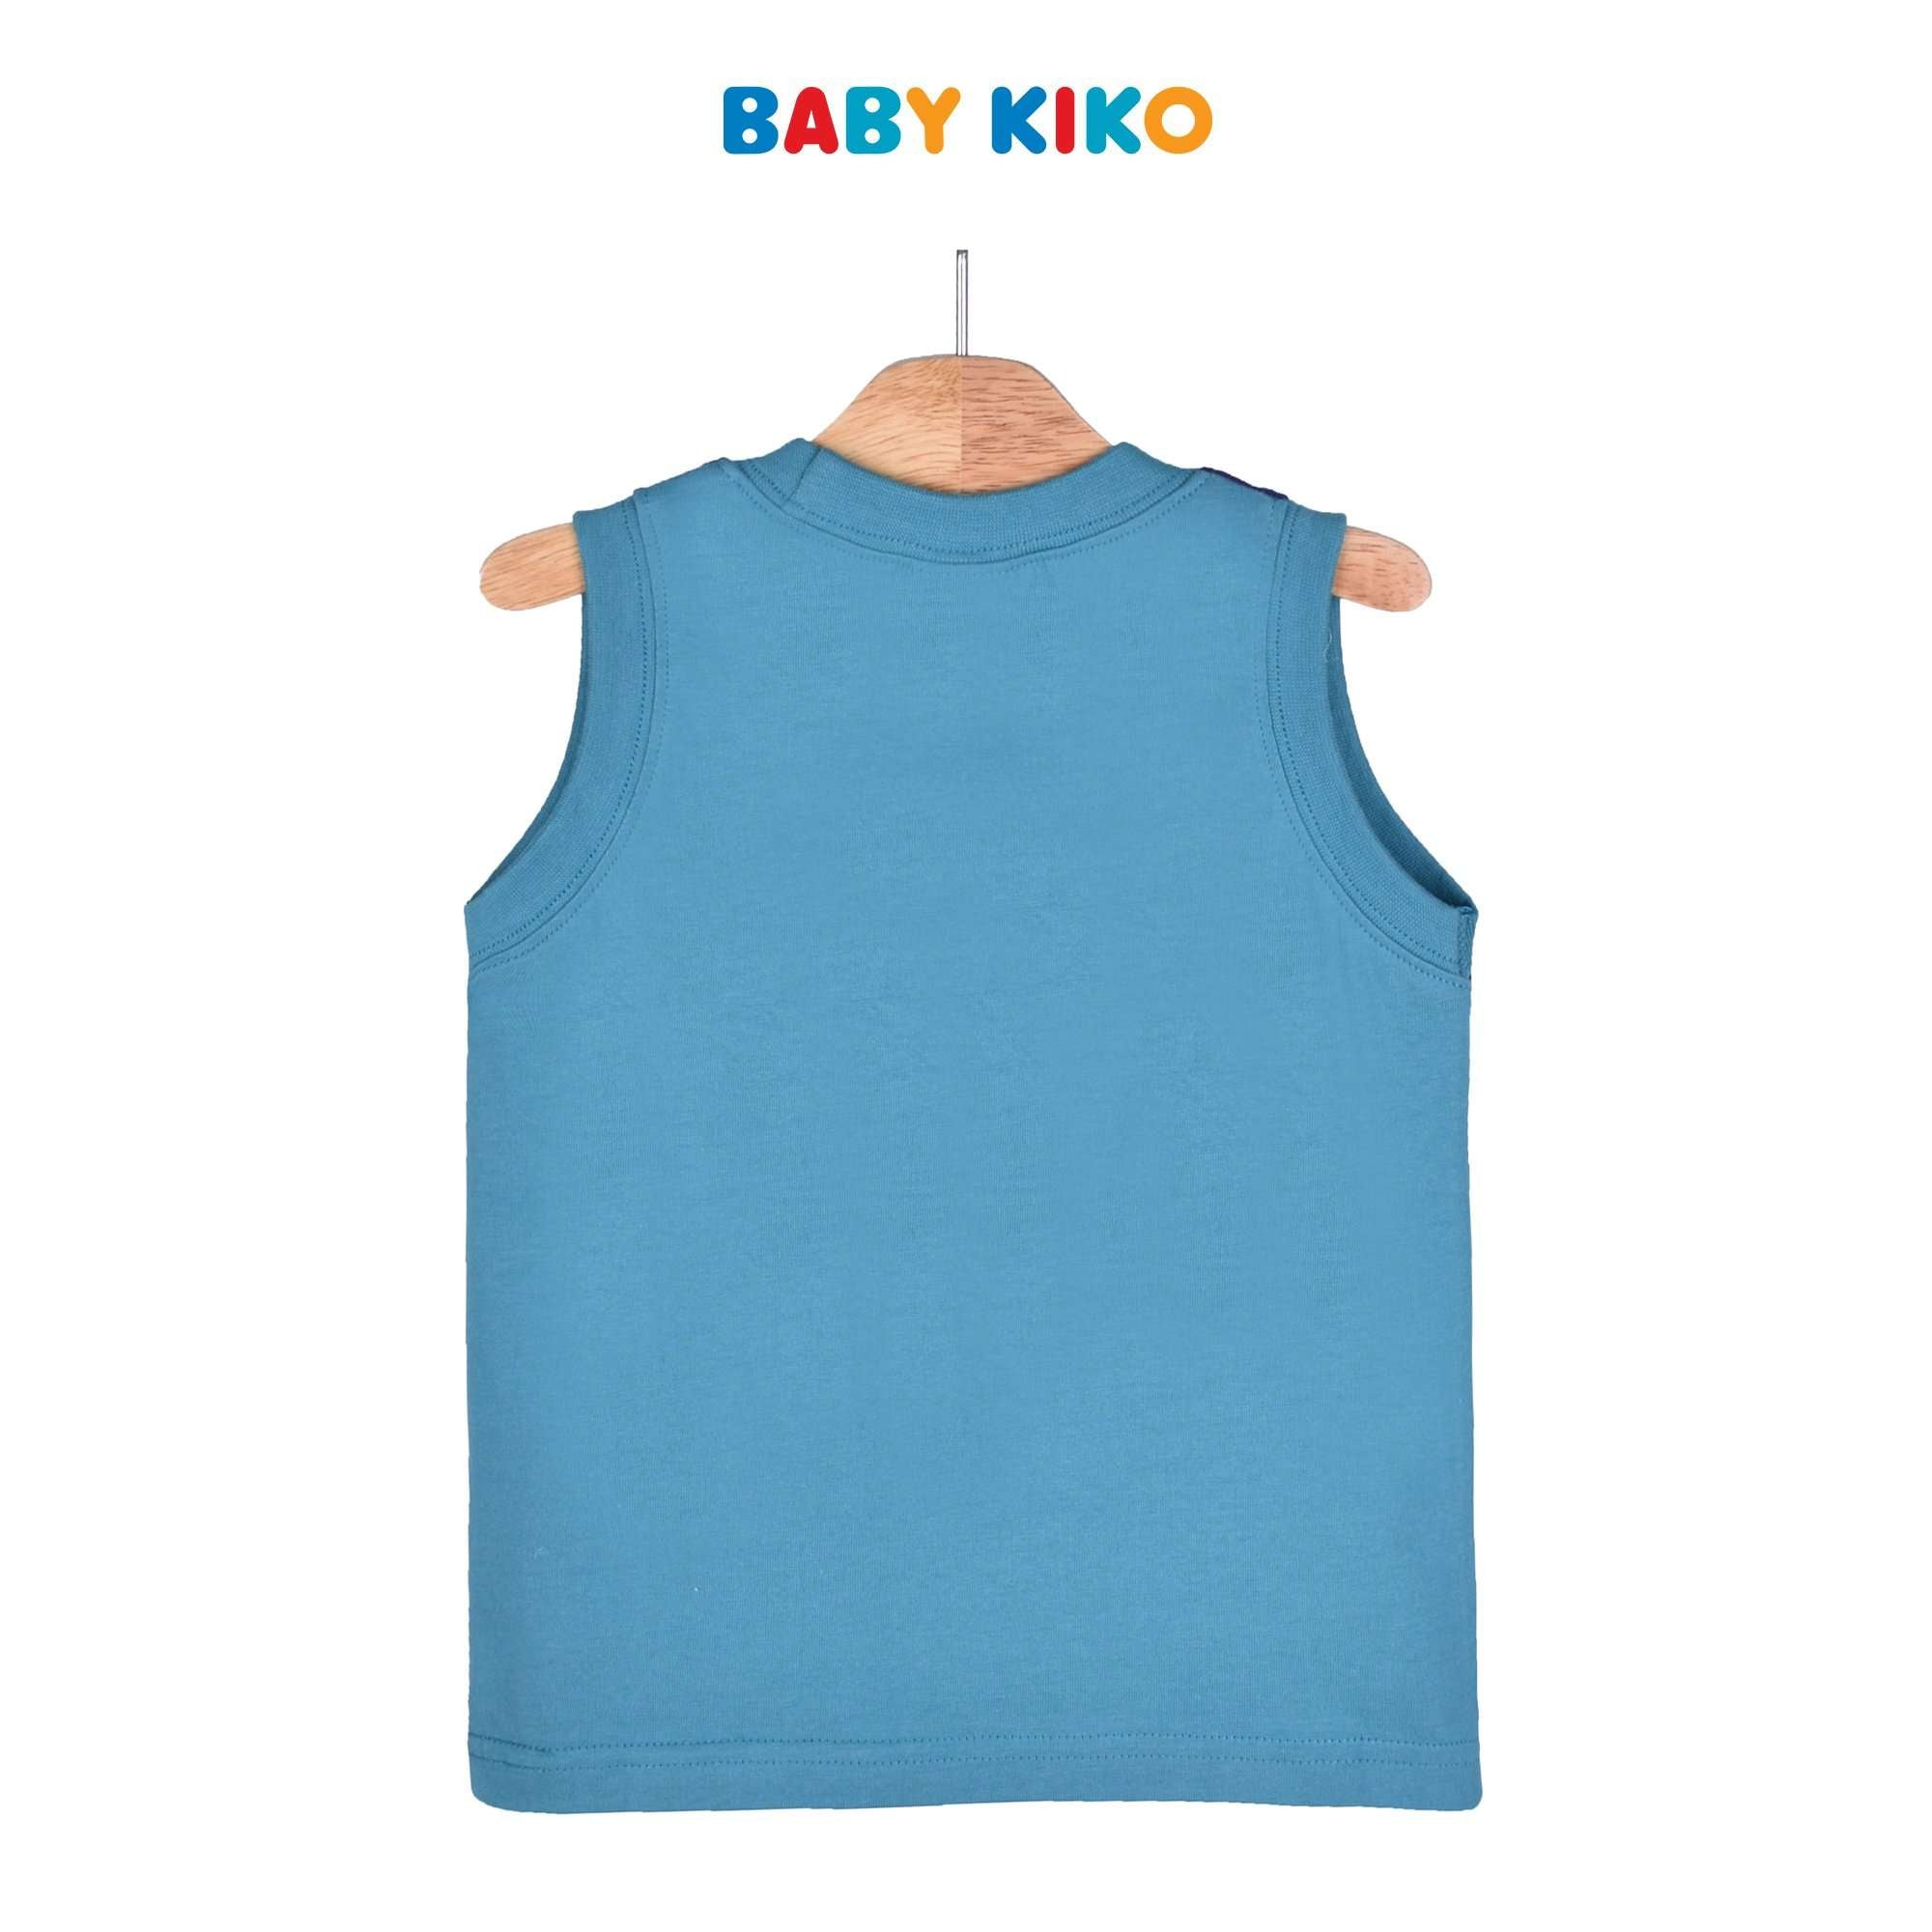 Baby KIKO Toddler Boy Sleeveless Tee Knit 335116-101 : Buy Baby KIKO online at CMG.MY